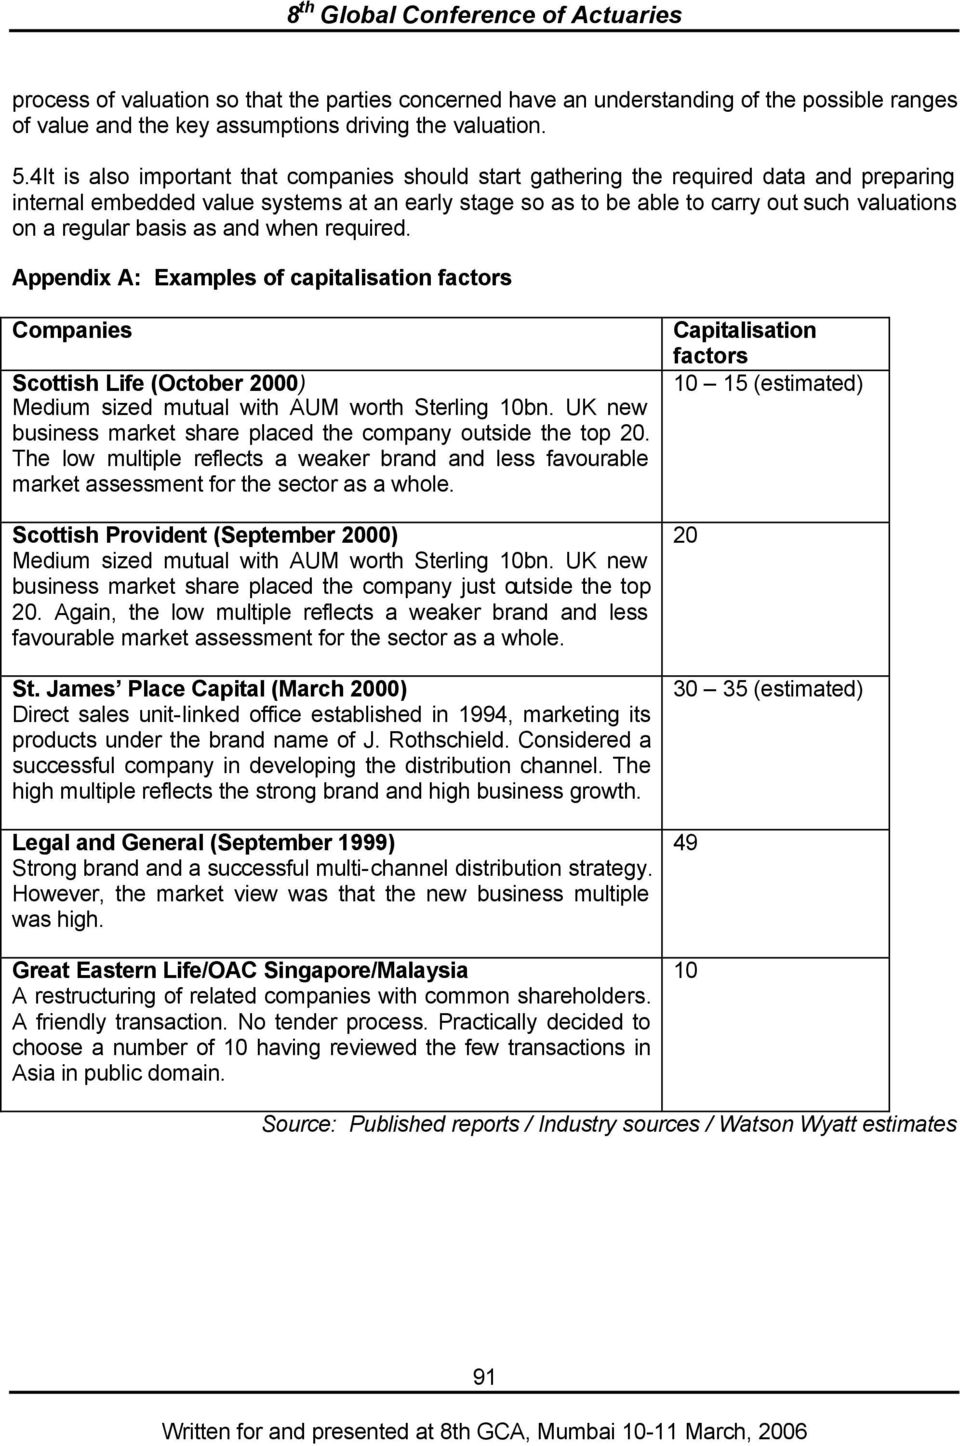 regular basis as and when required. Appendix A: Examples of capitalisation factors Companies Scottish Life (October 2000) Medium sized mutual with AUM worth Sterling 10bn.